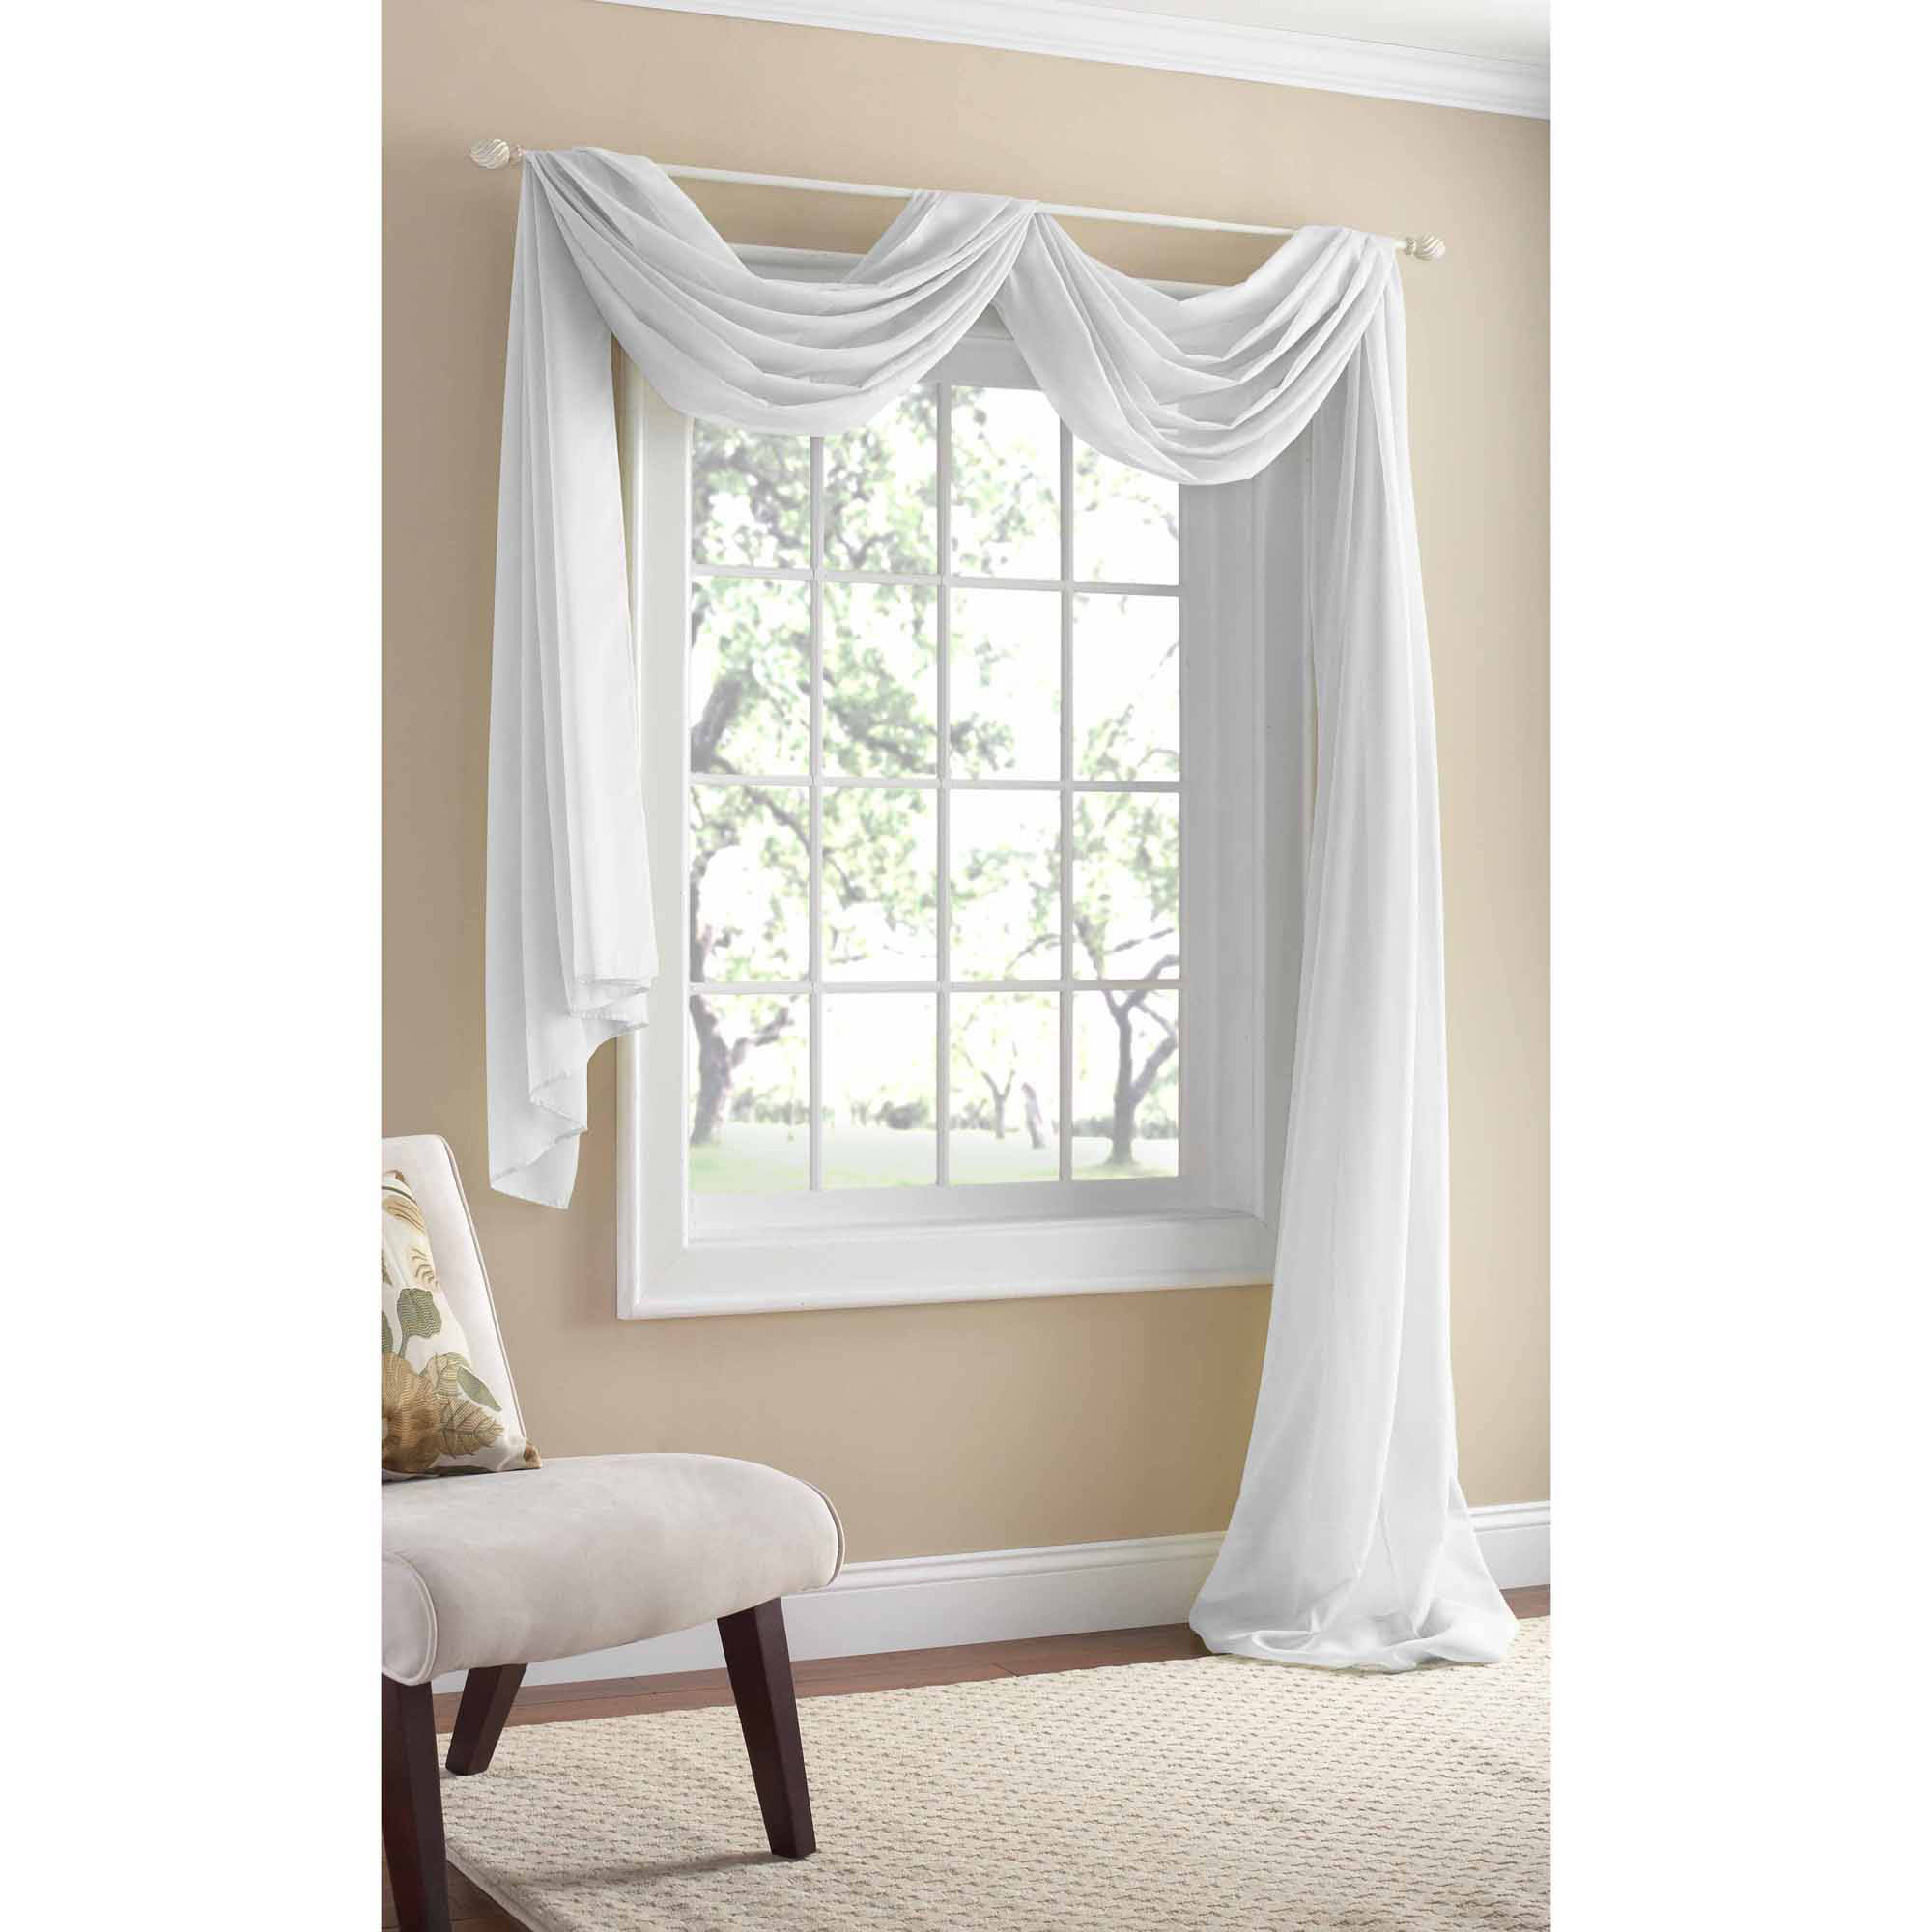 Mainstays Marjorie Sheer Voile Curtain Scarf, 59x216